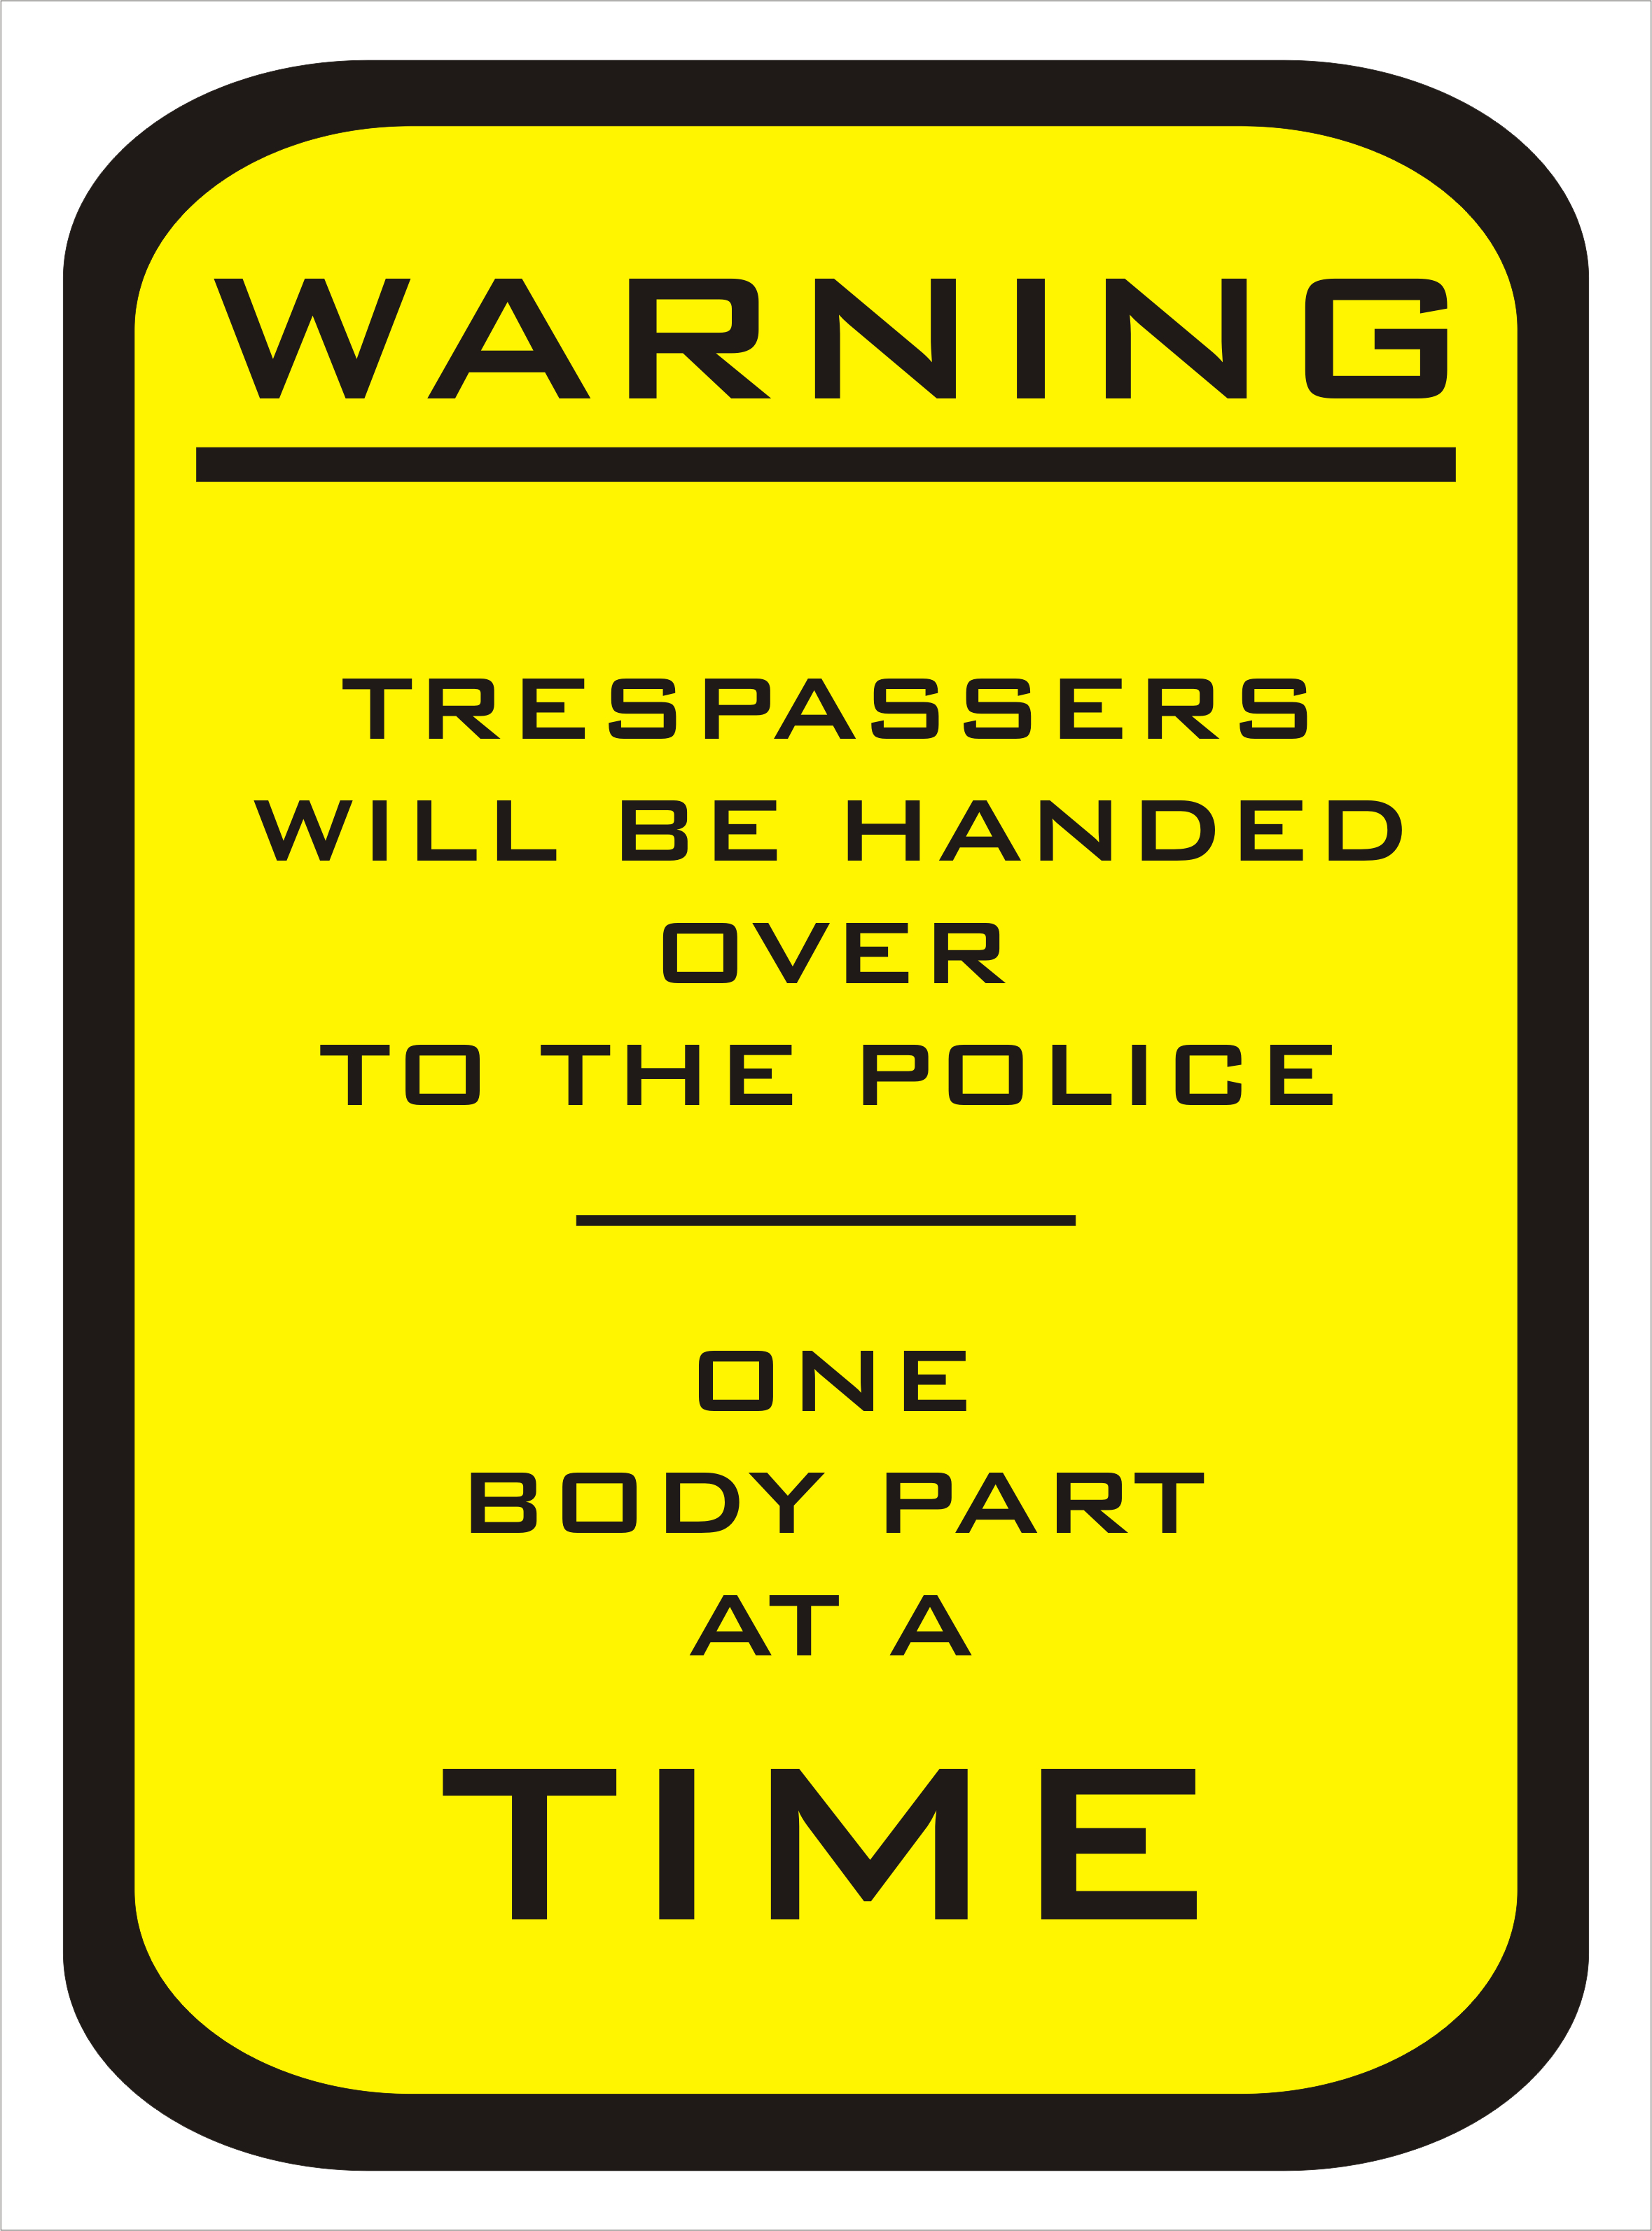 Warning Trespassers will be handed over to the police on body part at a time sign